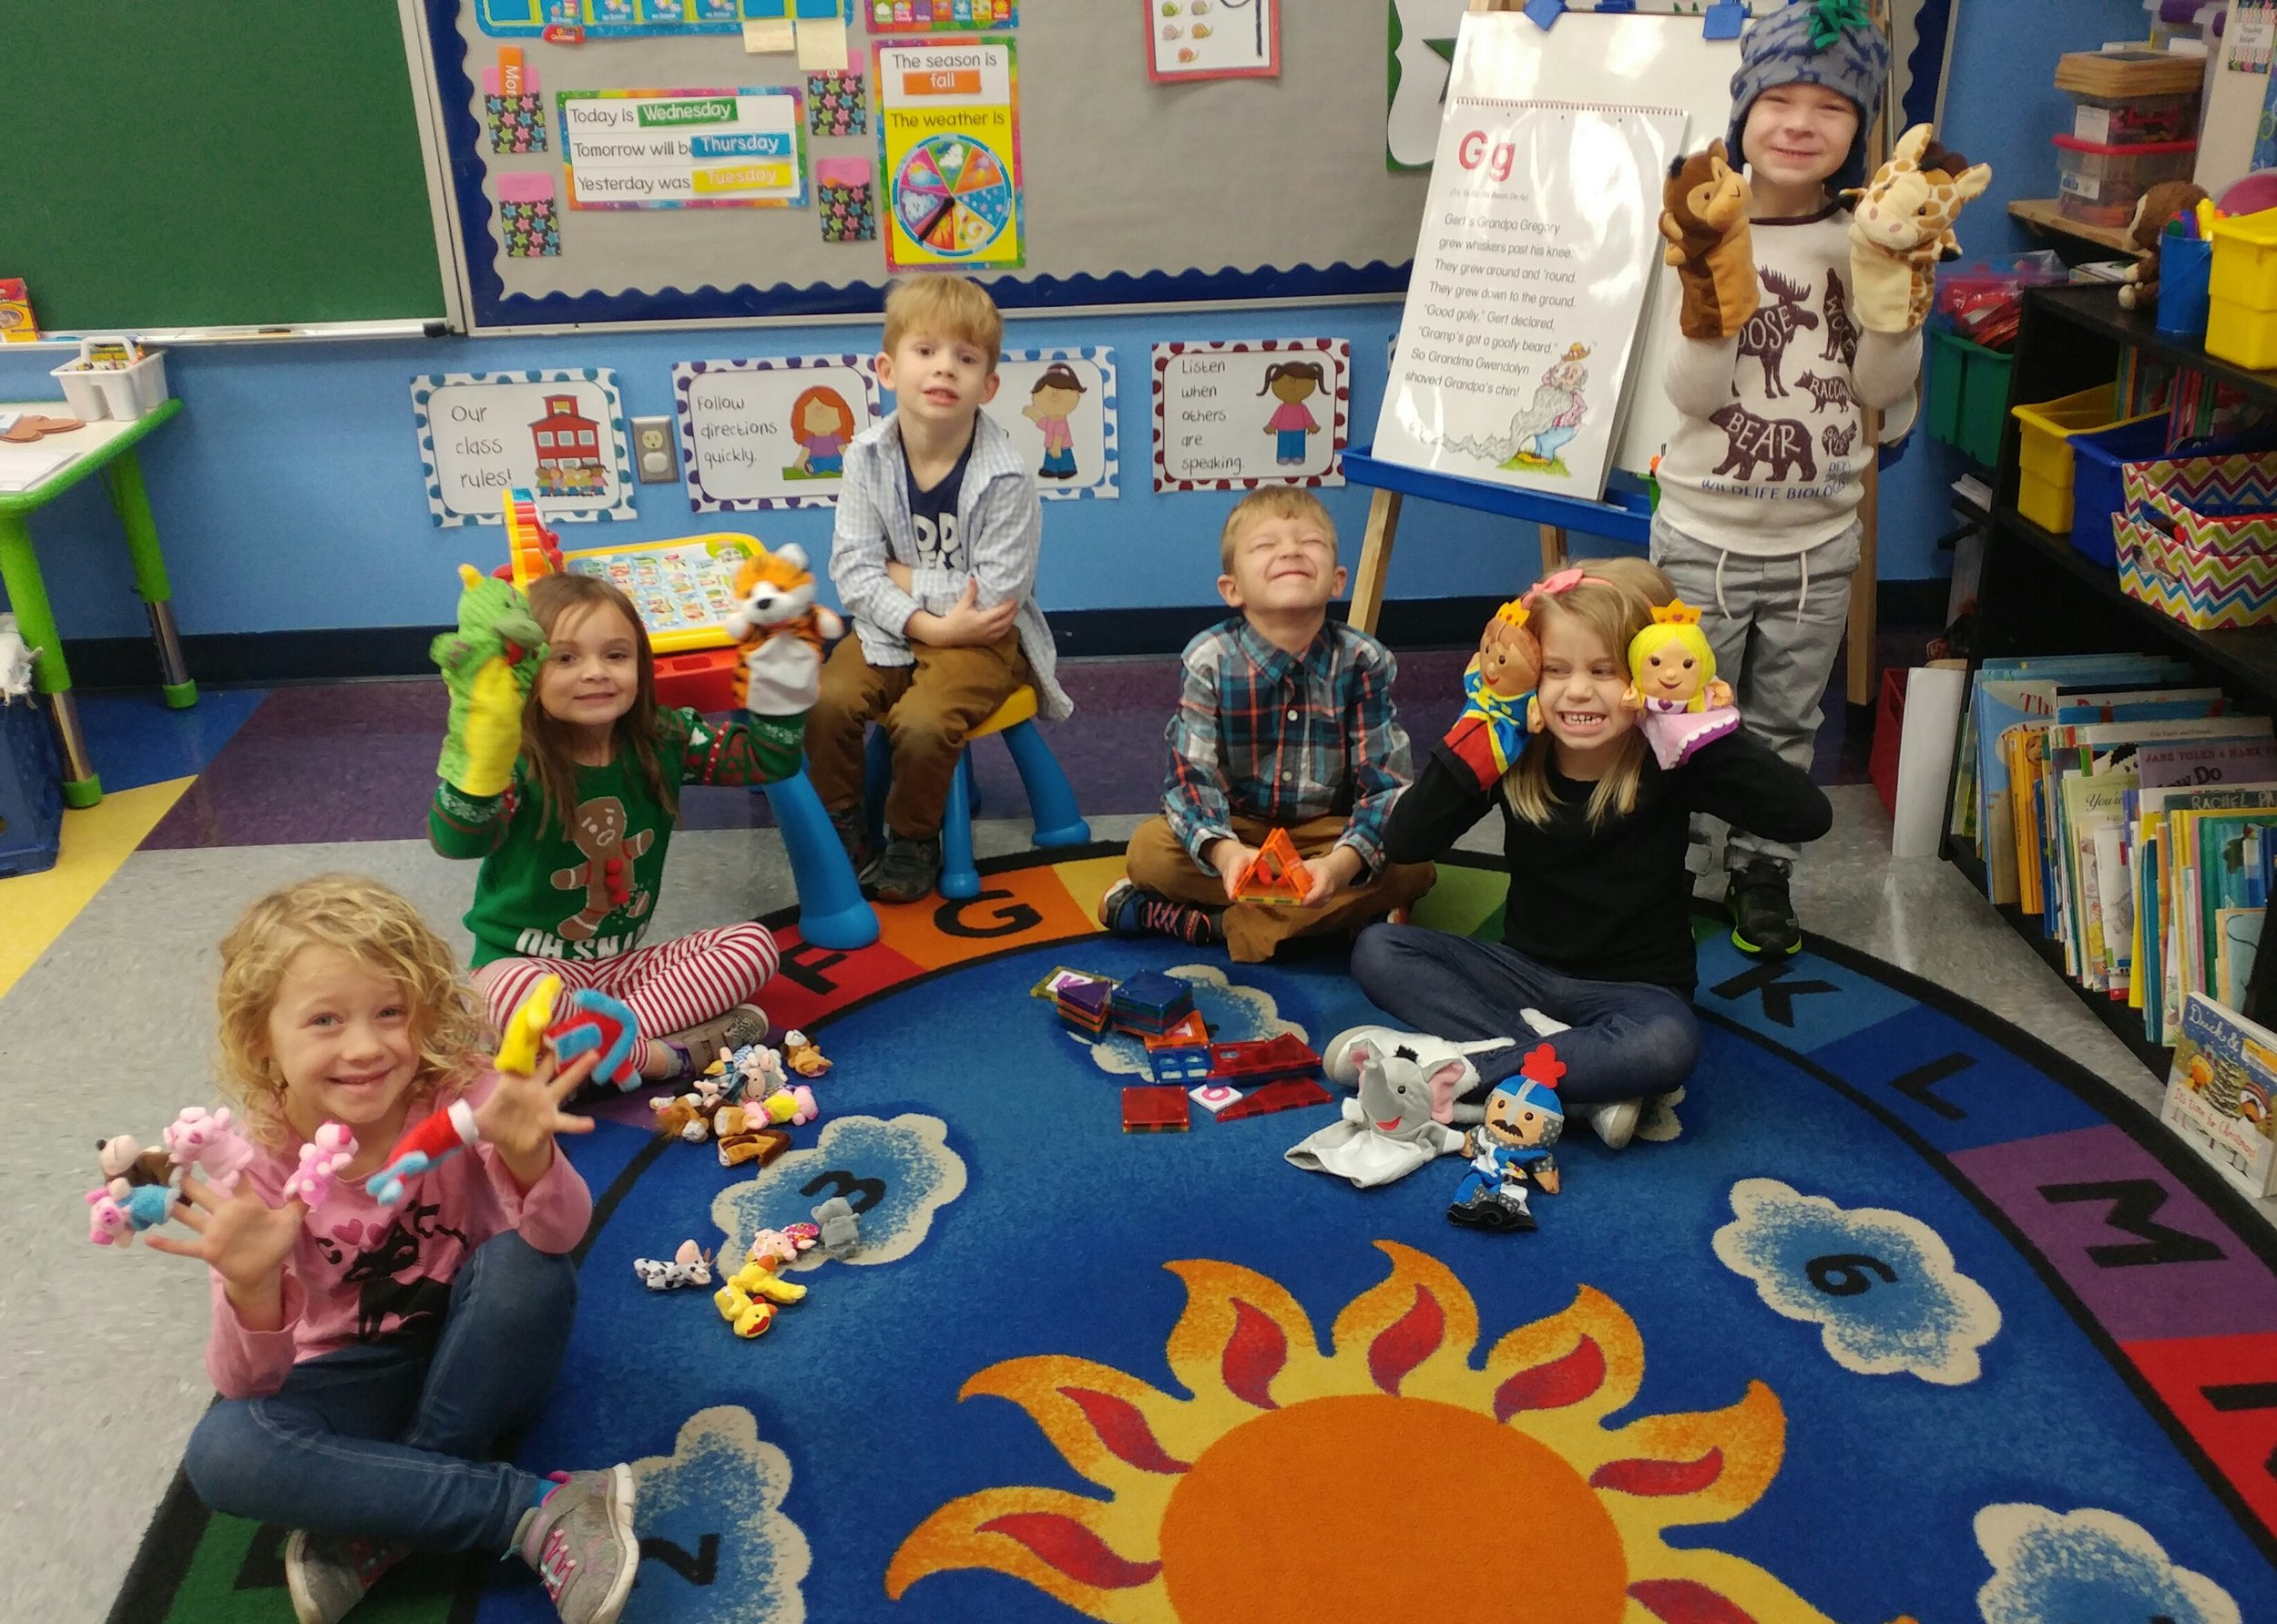 """SCA Early Education Teacher Mrs. Holli Roderick recently collected $359 in one-dollar bills for her classroom during the Mavericks' """"Dash for Cash"""". Pictured is her classroom with some of their new educational toys and equipment she purchased with the dash cash."""